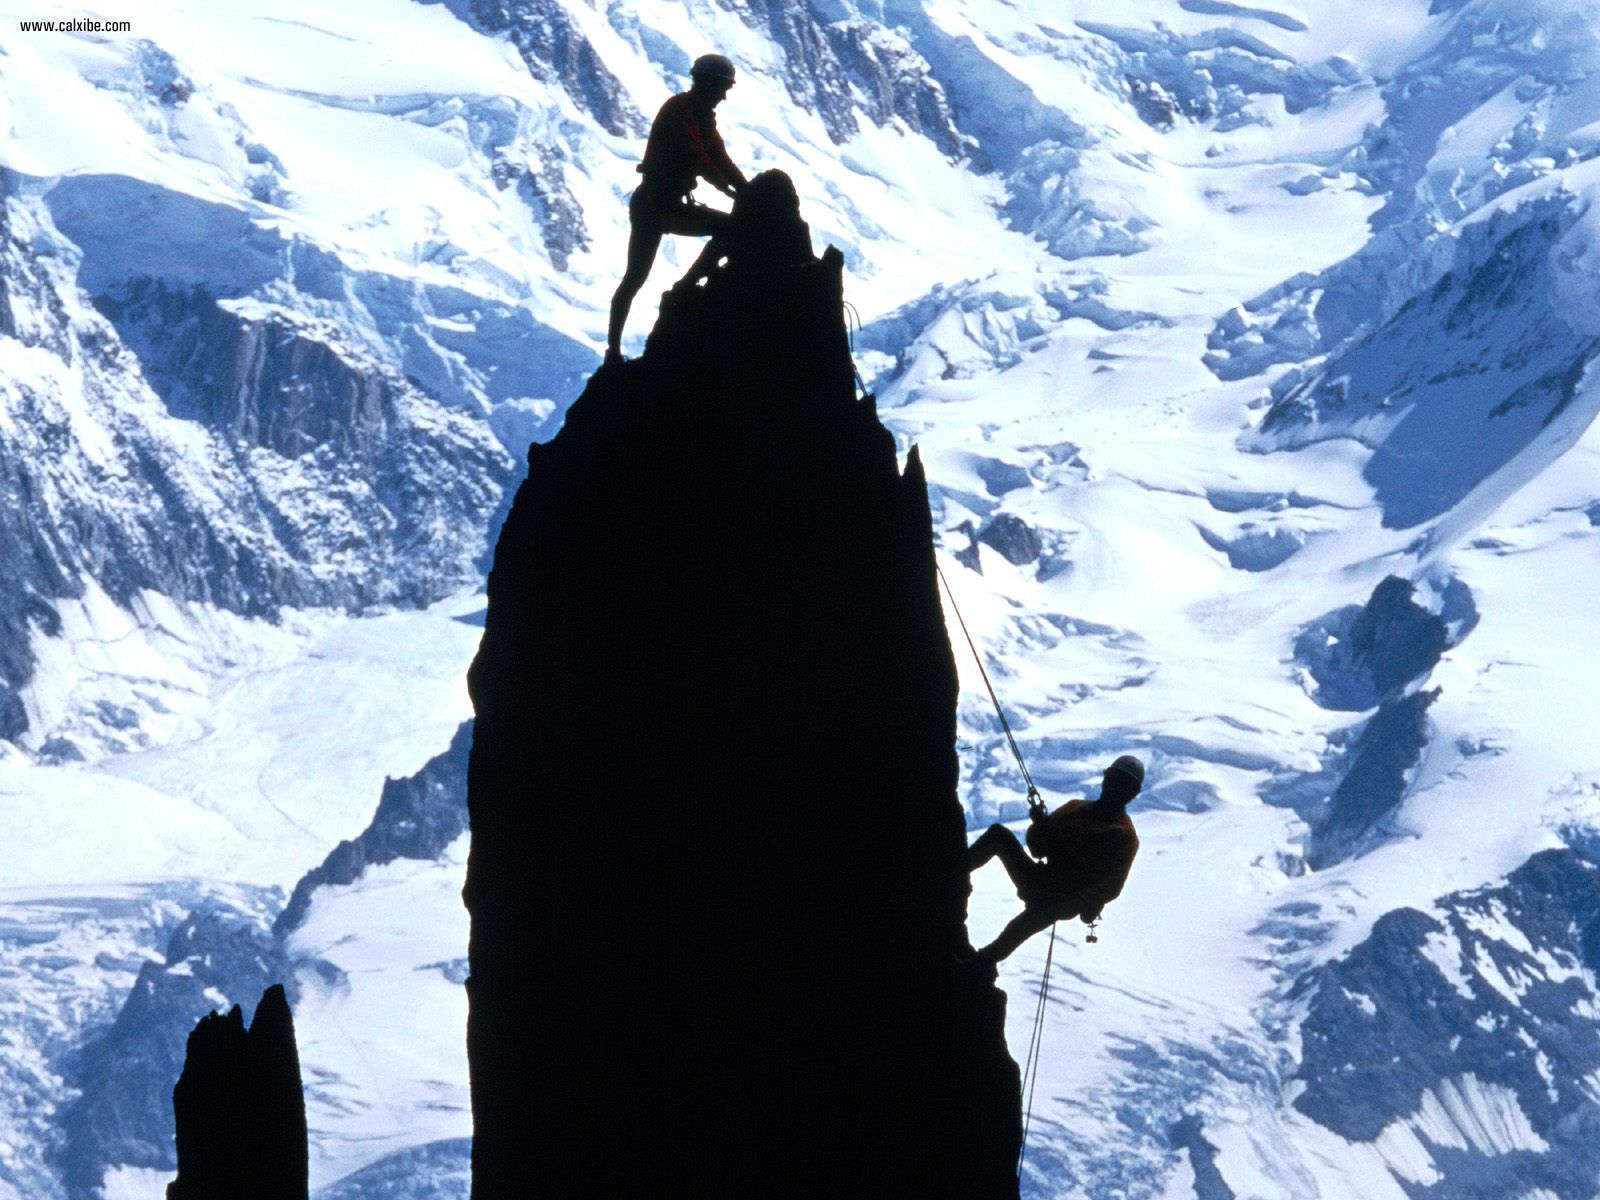 1600x1200 - Mountaineering Wallpapers 24